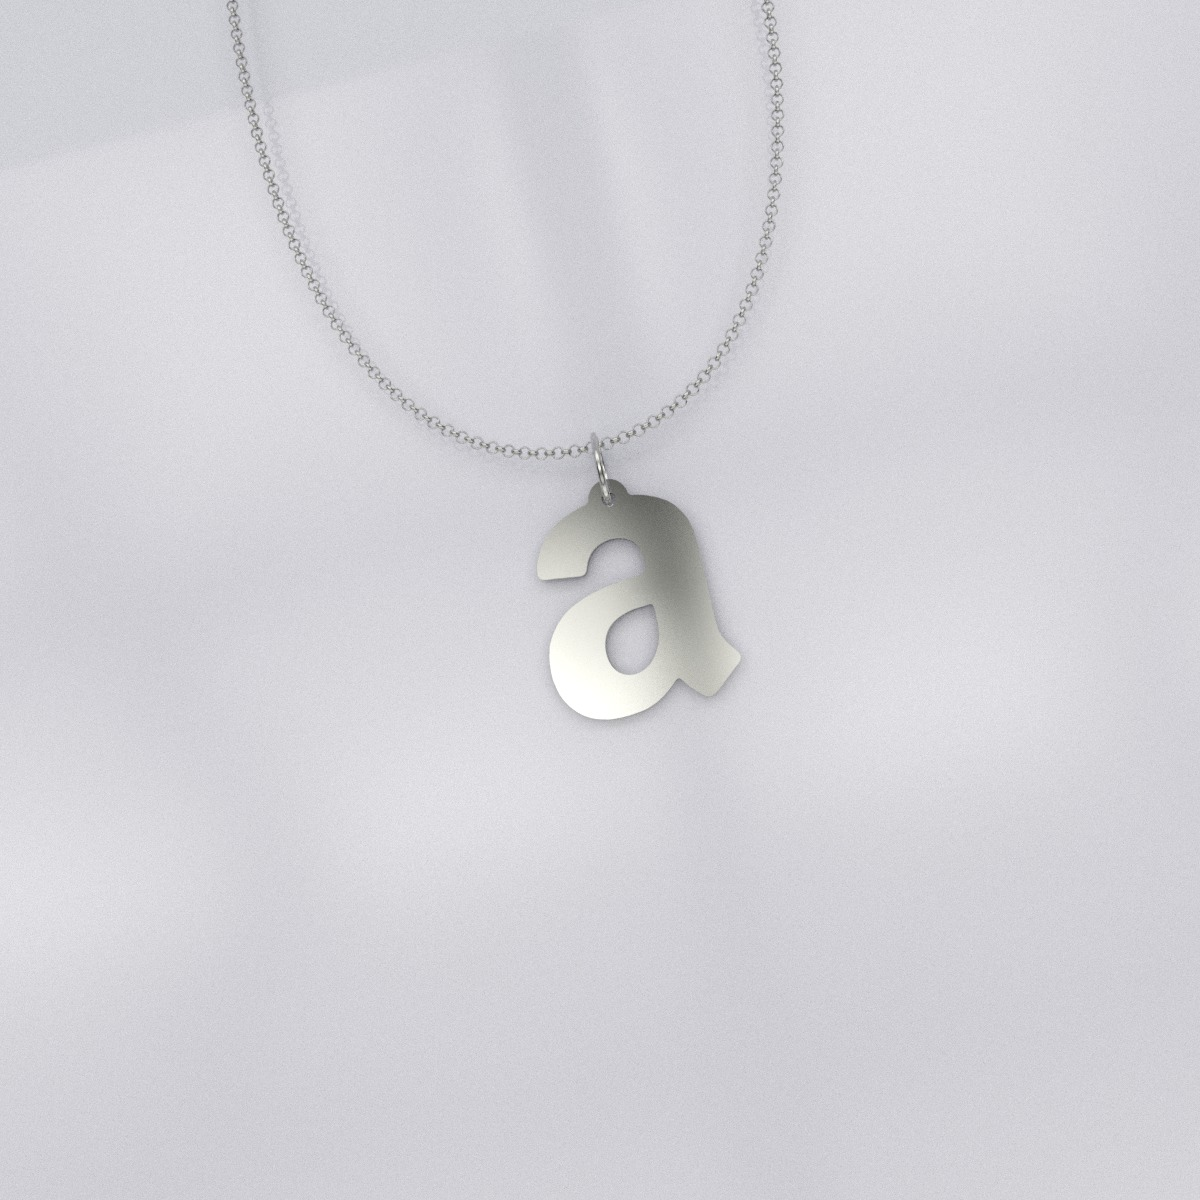 Pendant still silver plated